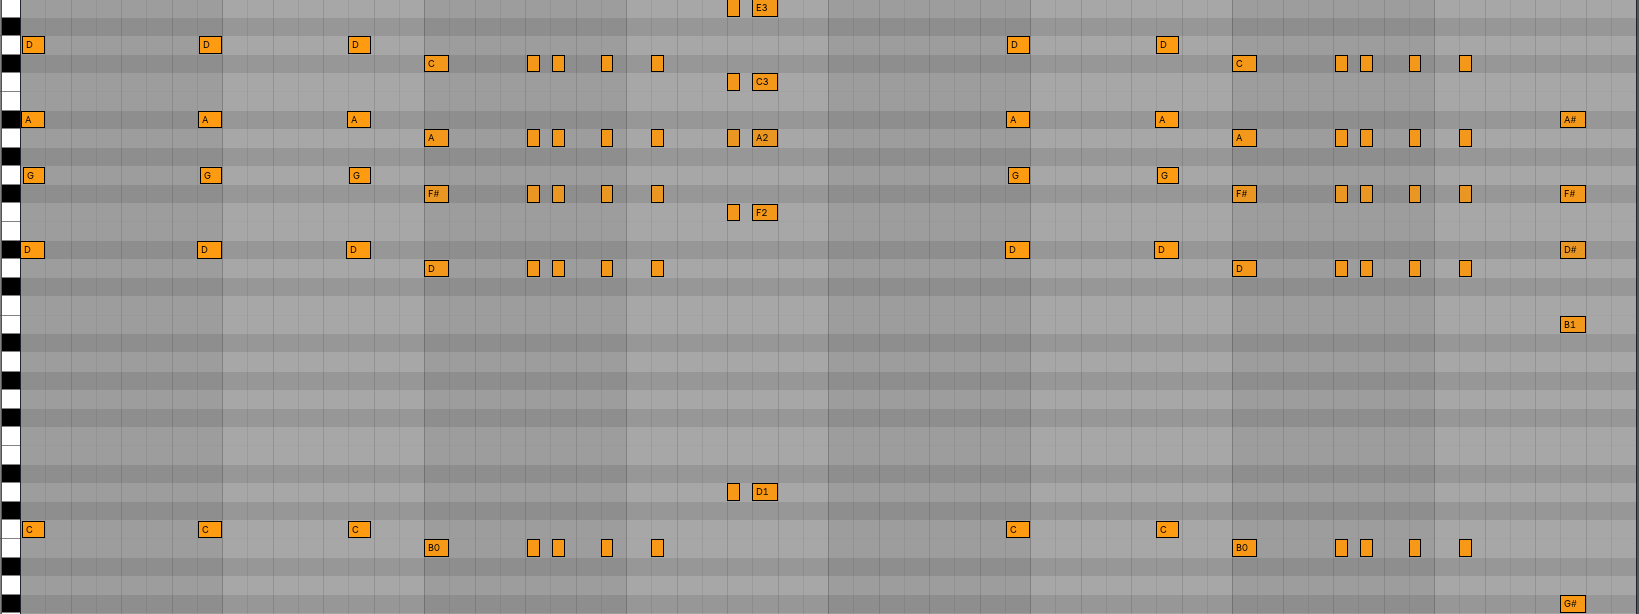 These are the same chords as above, just made smaller and chopped up